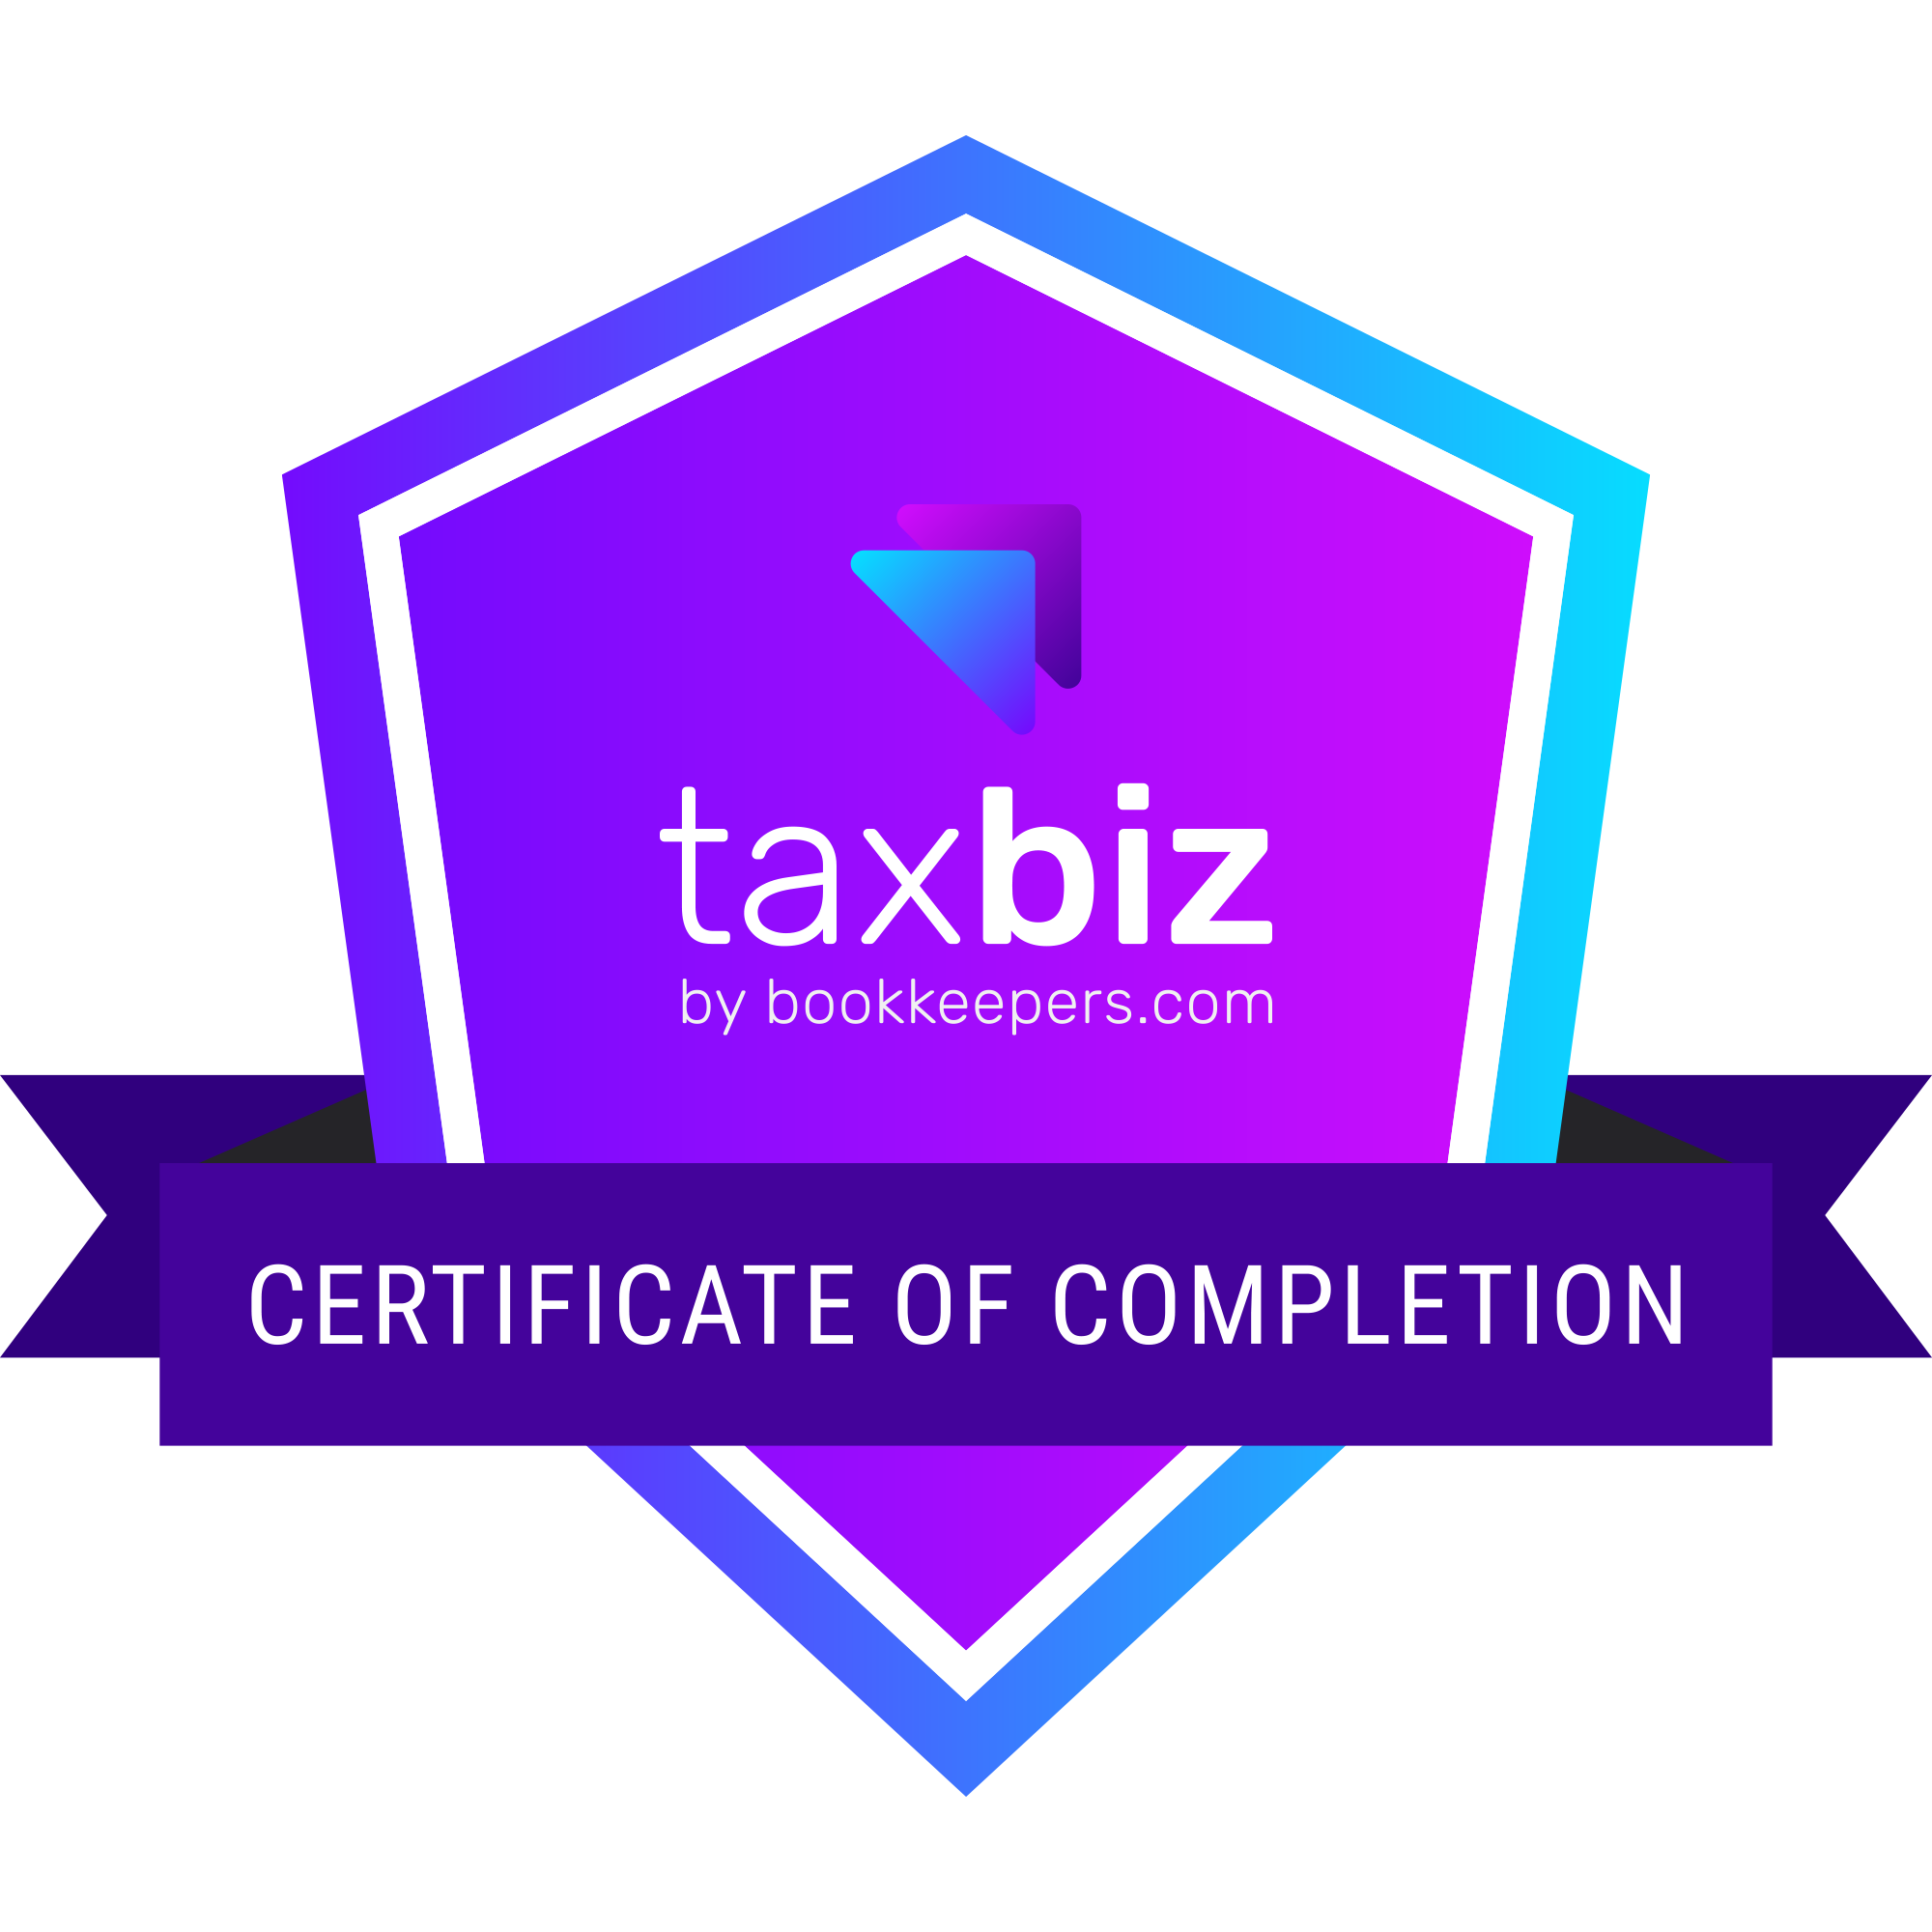 TaxBiz Certificate of Completion